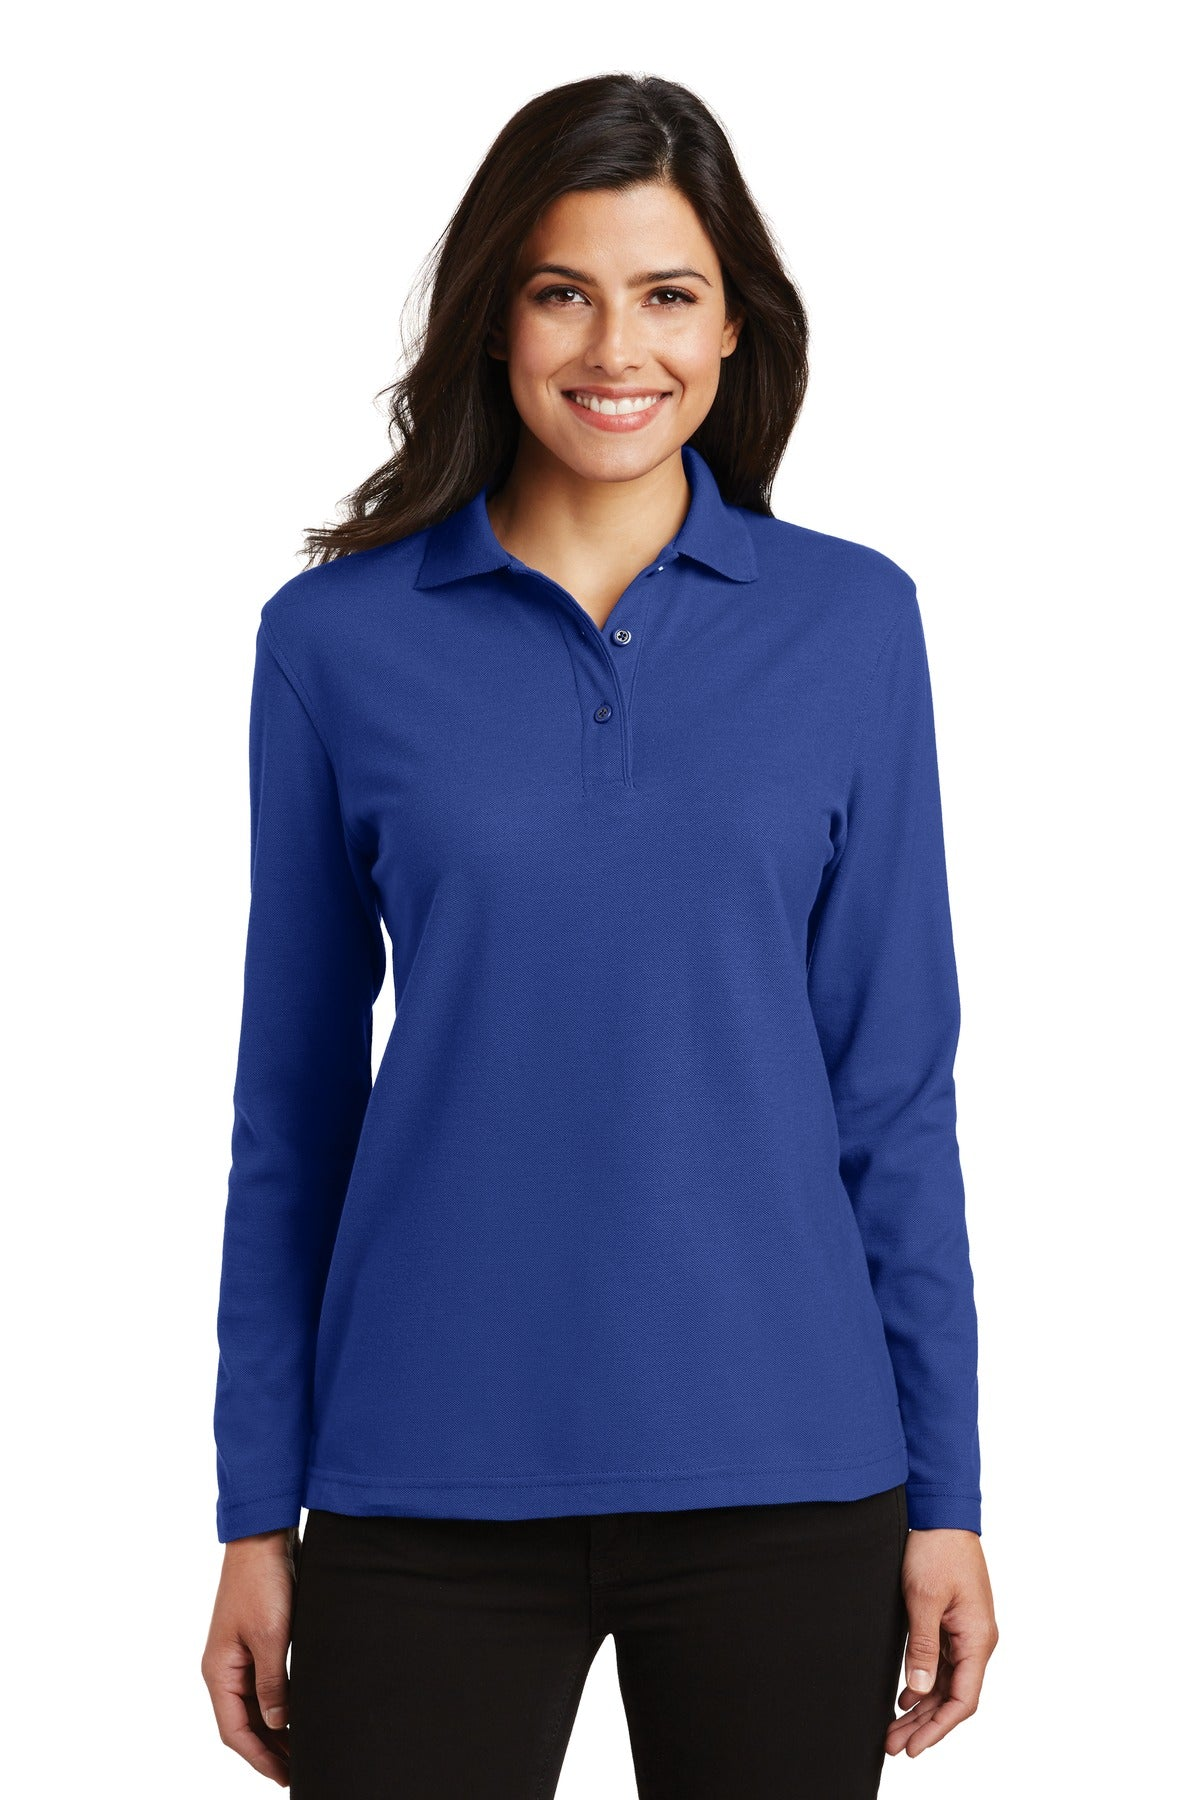 Navy / Light Stone Port Authority Ladies Short Sleeve Easy Care Shirt.